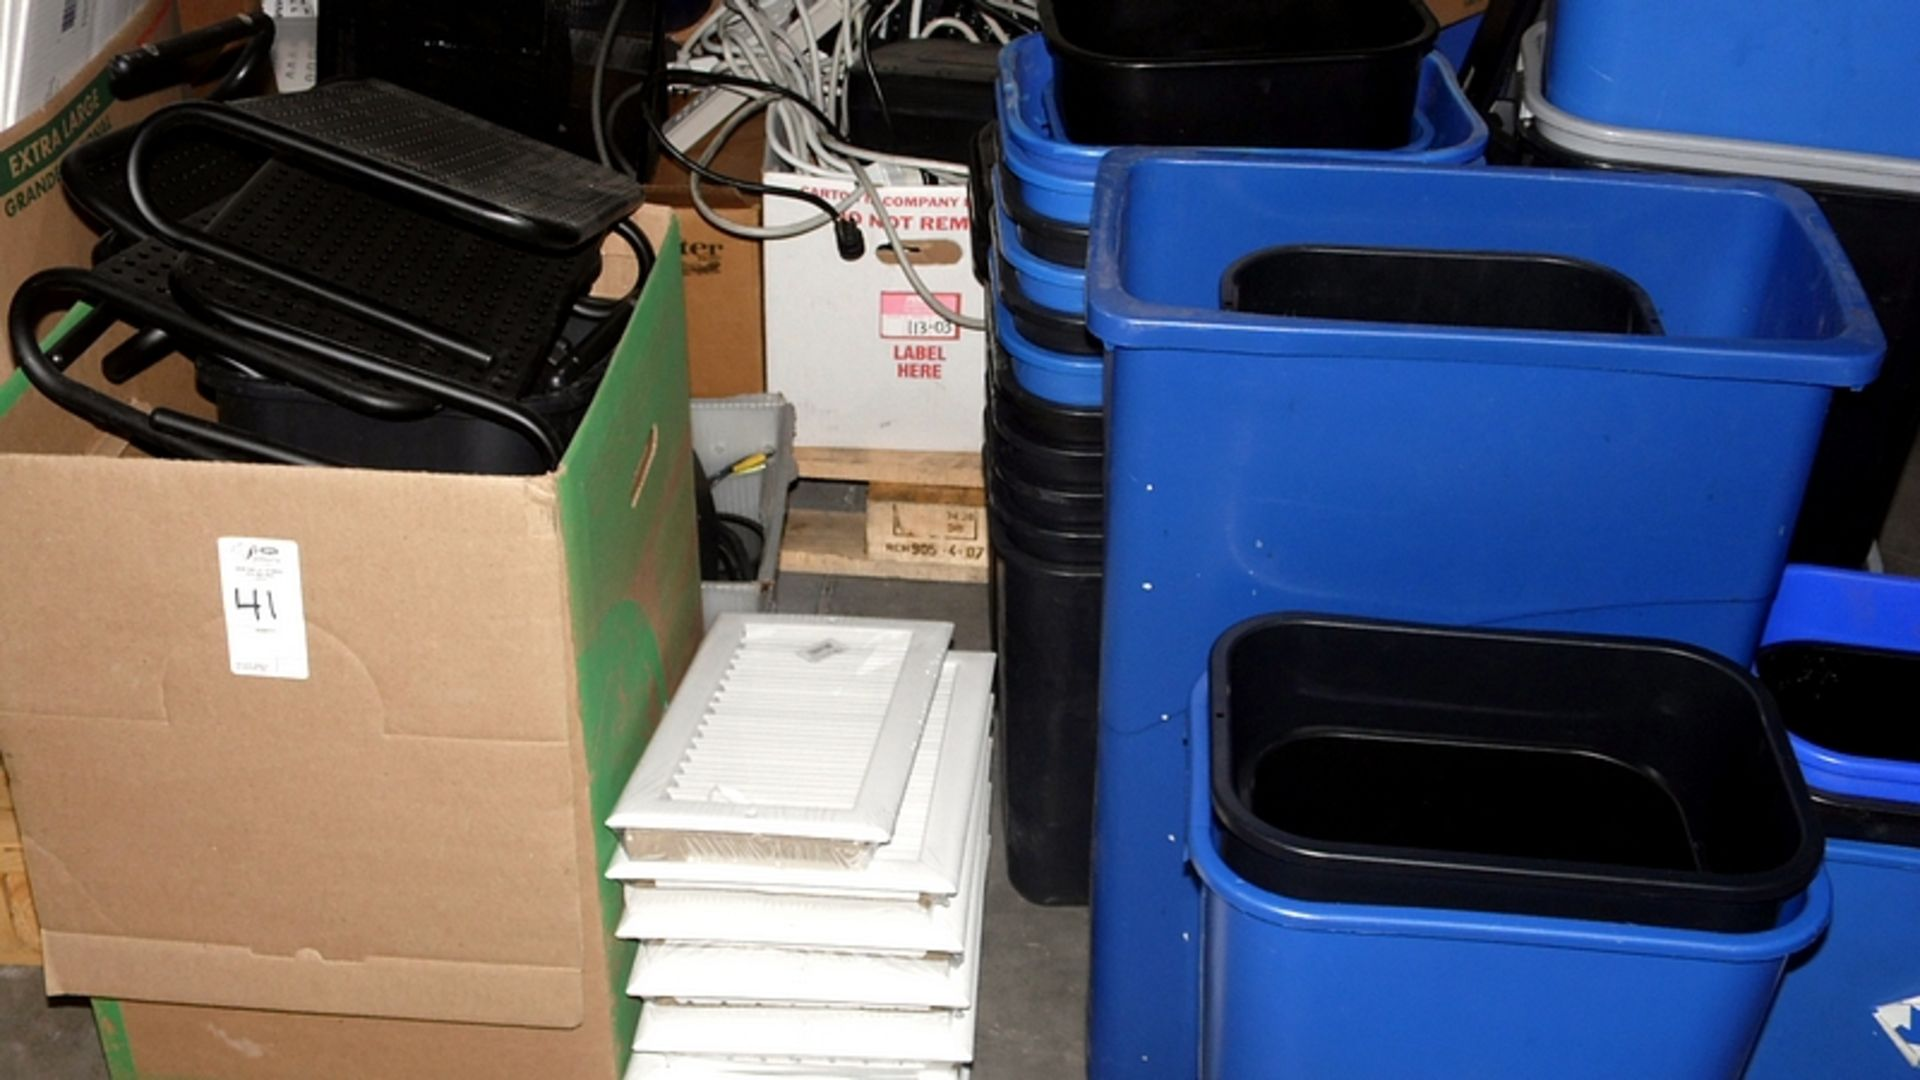 PALLETS OF OFFICE SUPPLY'S